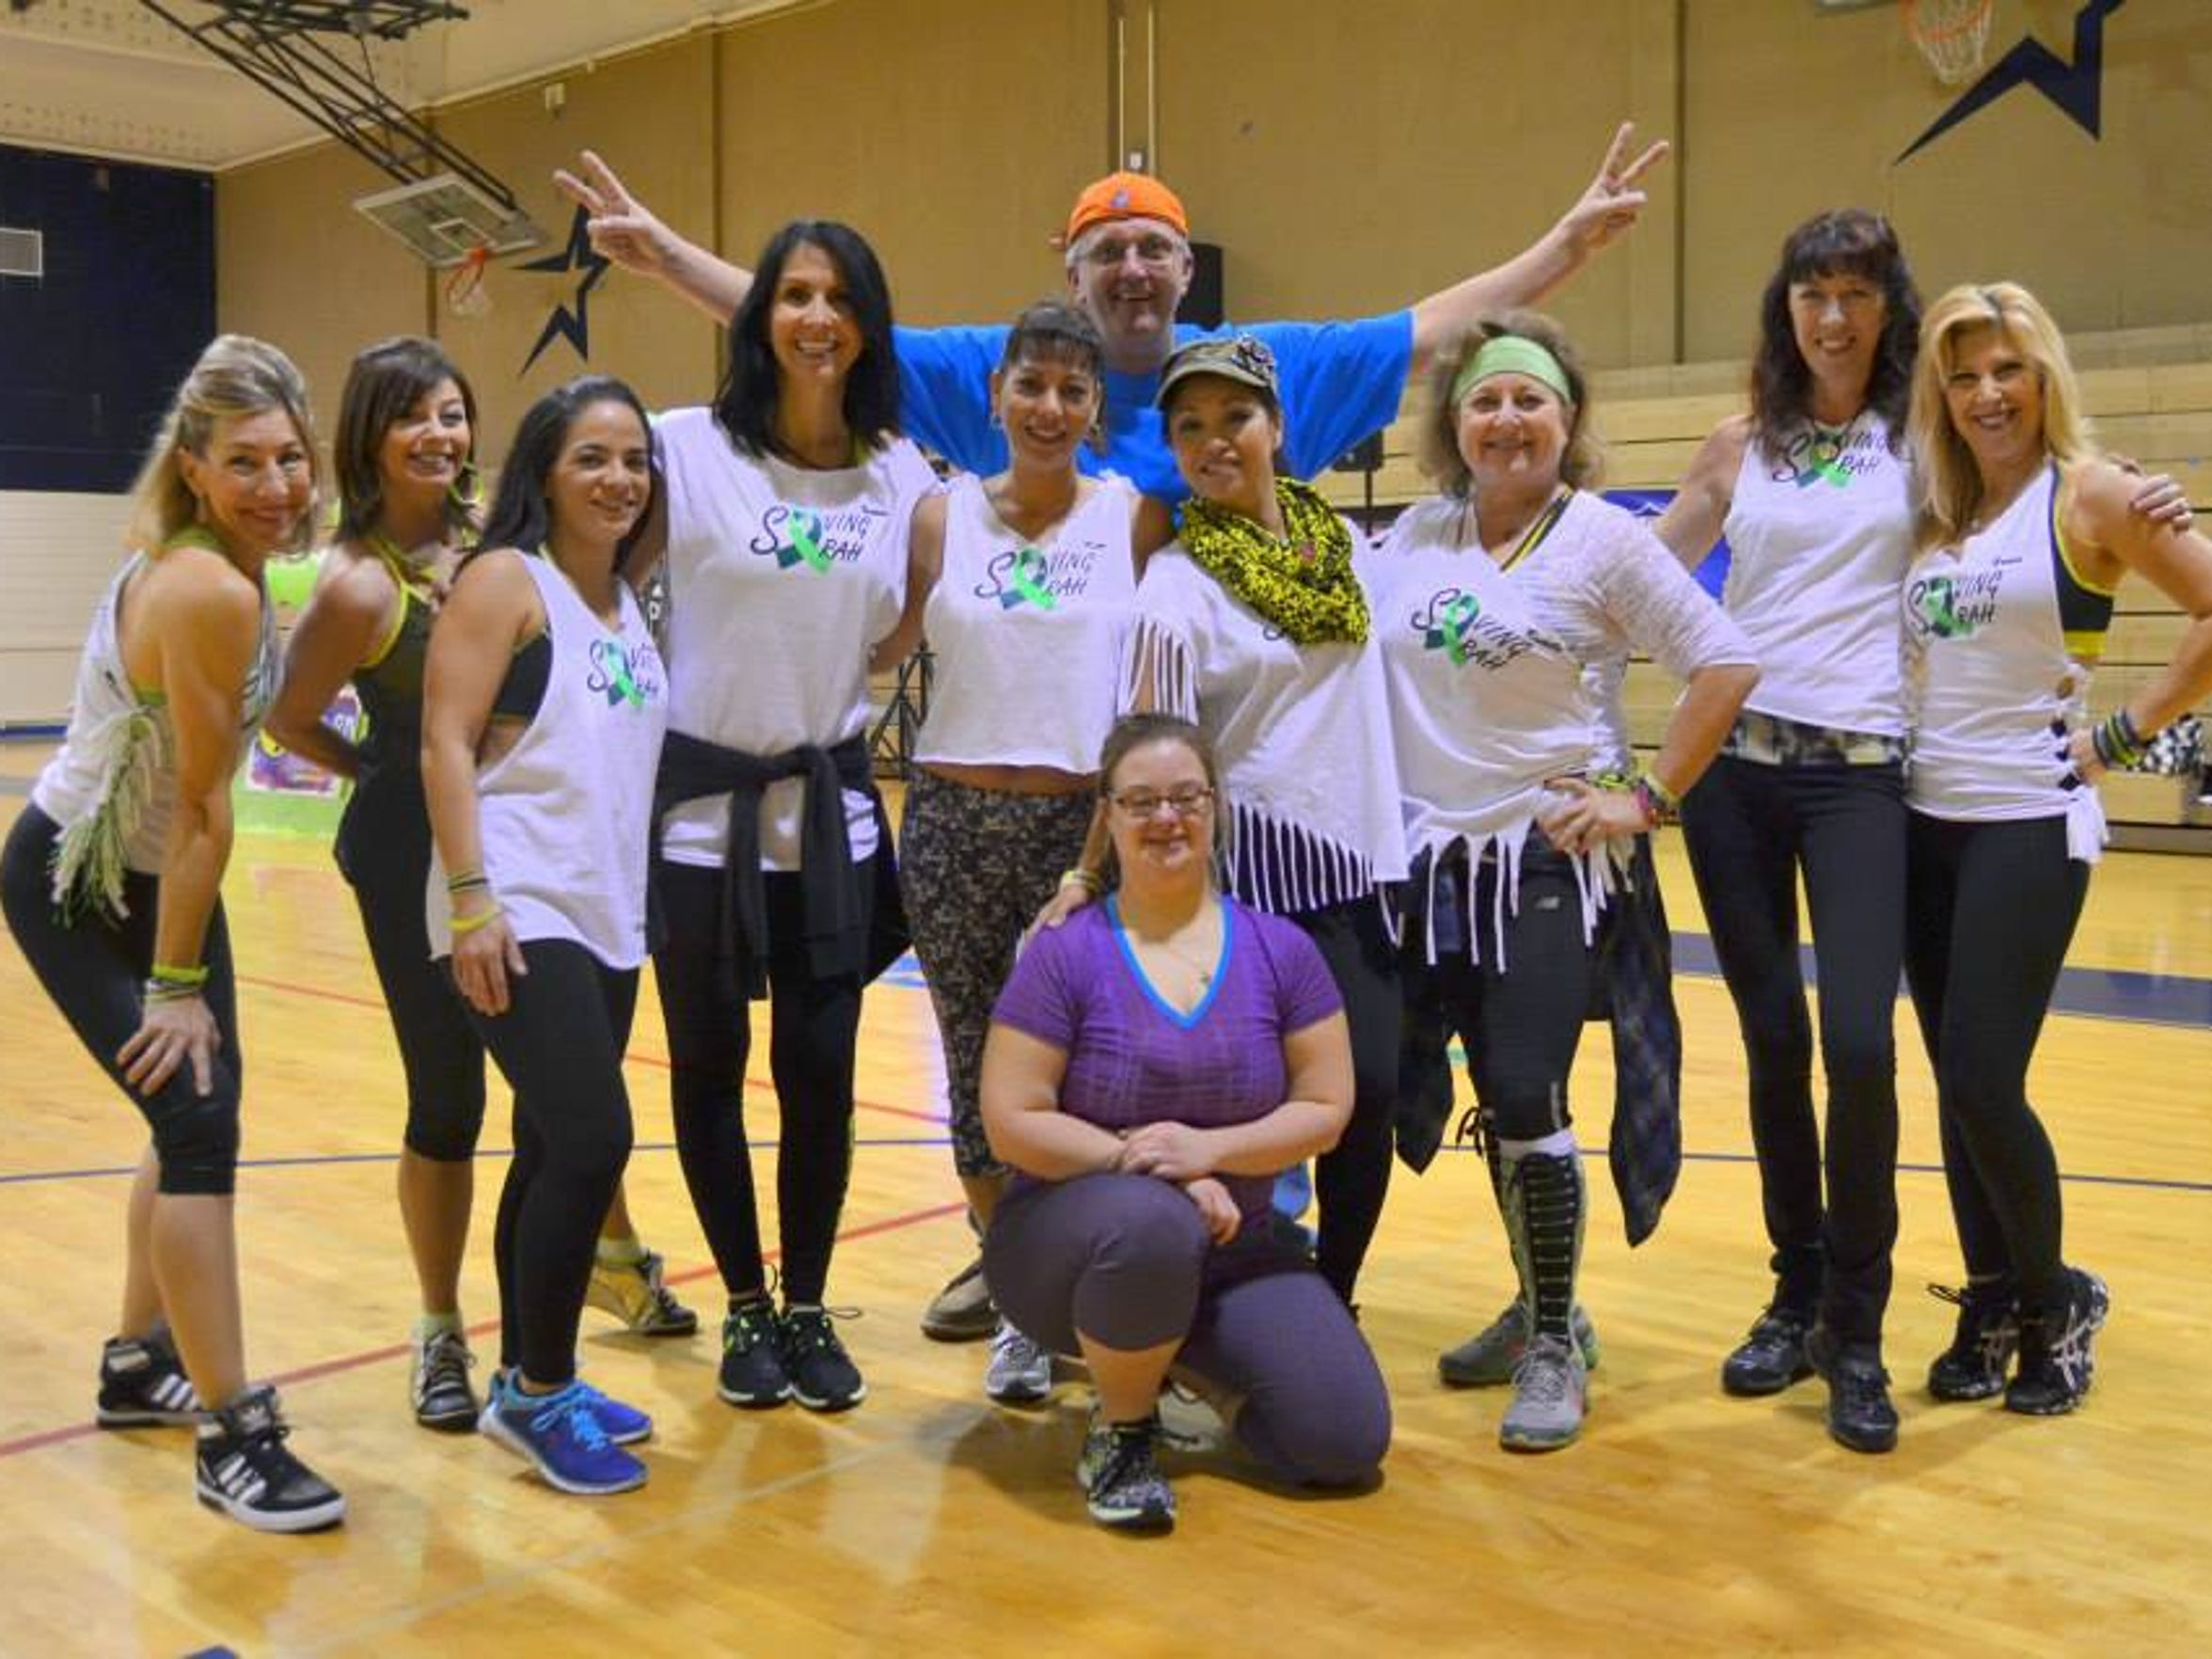 Family, friends and strangers participated in a recent Zumba event to raise money for Sarah Chardavoyne.